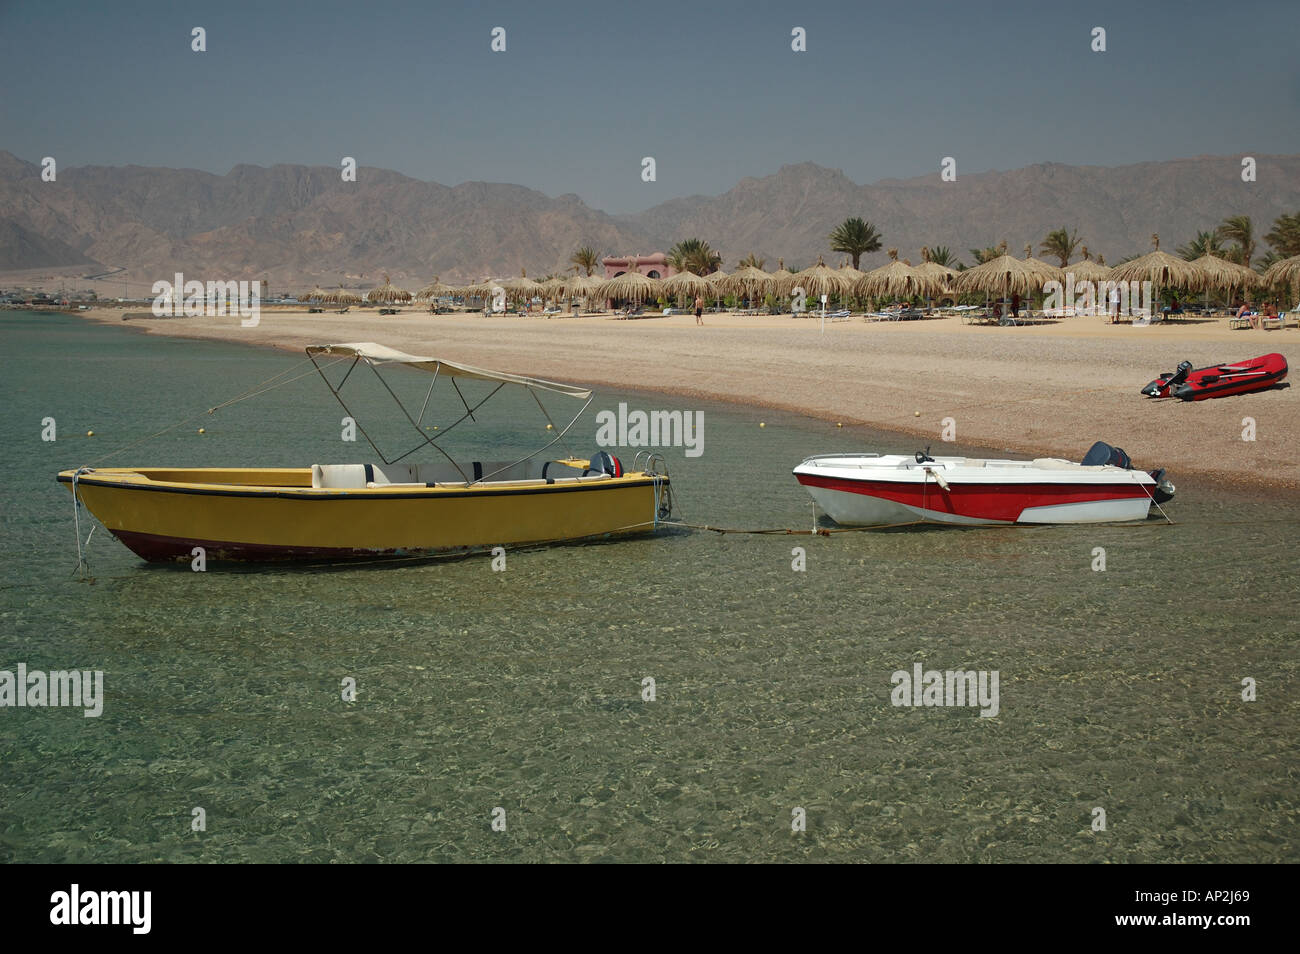 Three small powerboats used for water sports activities moored at the Coral Hilton Resort beach in Nuweiba Egypt - Stock Image